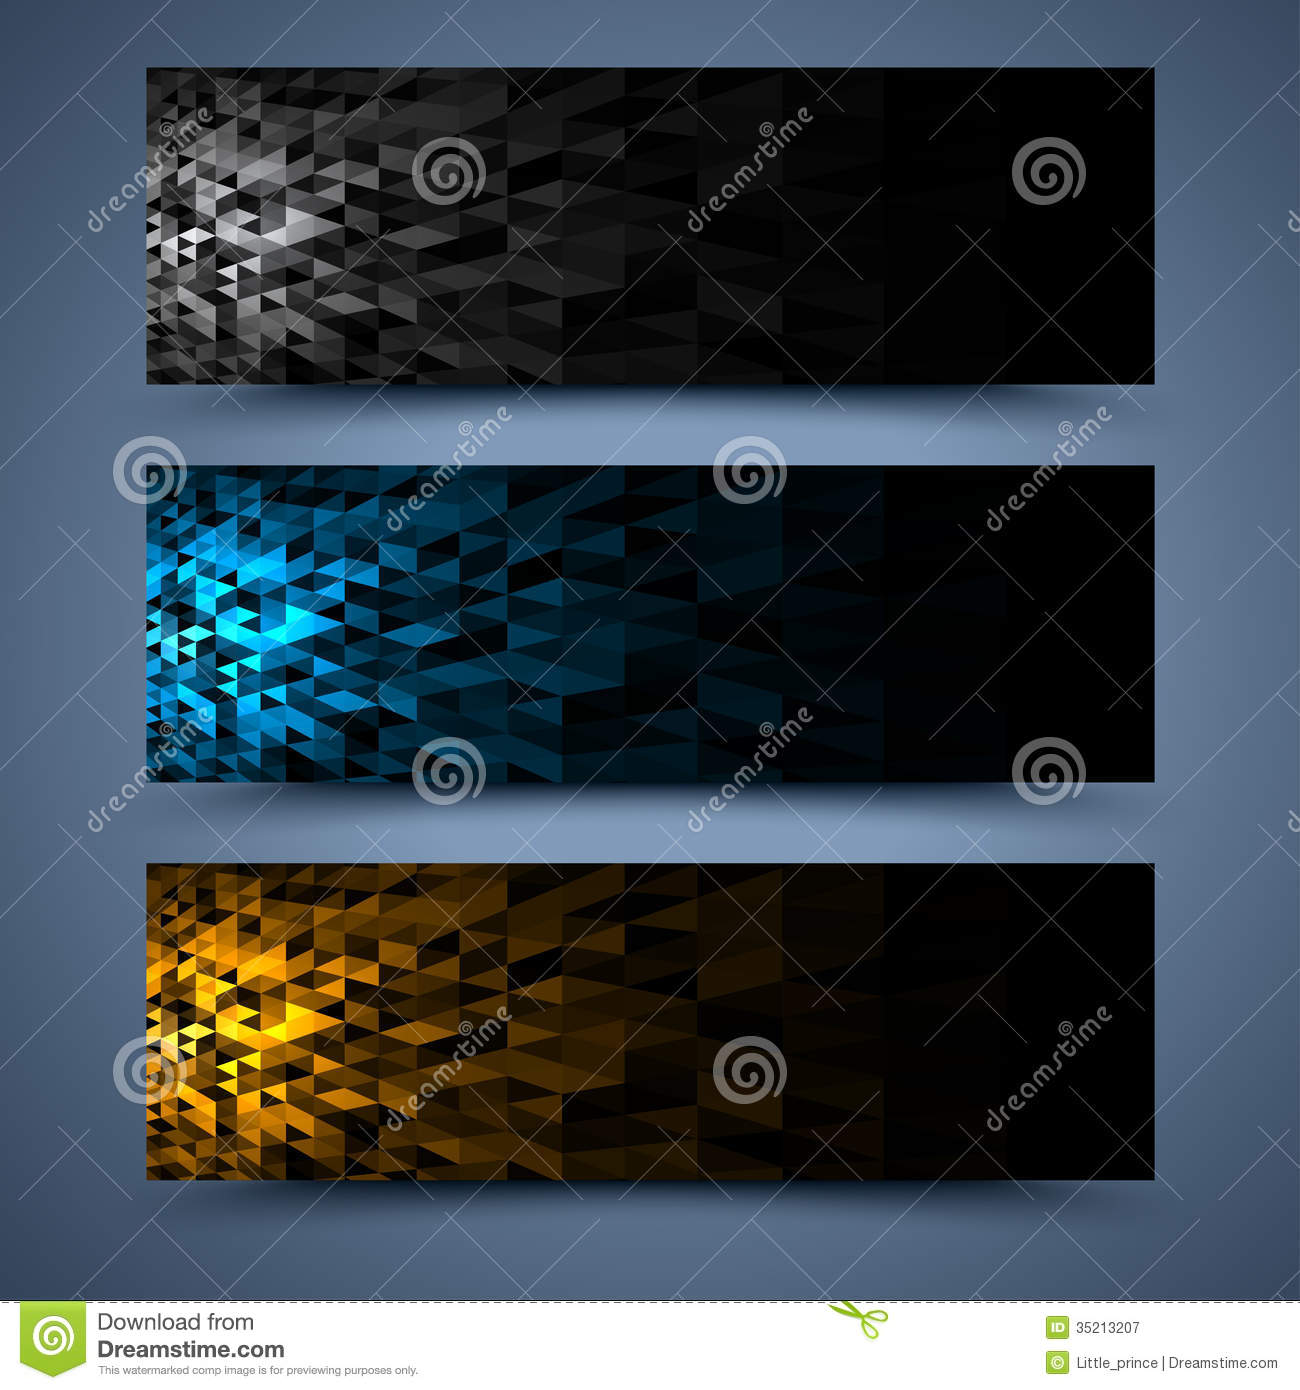 Ð olor banners templates abstract backgrounds stock vector